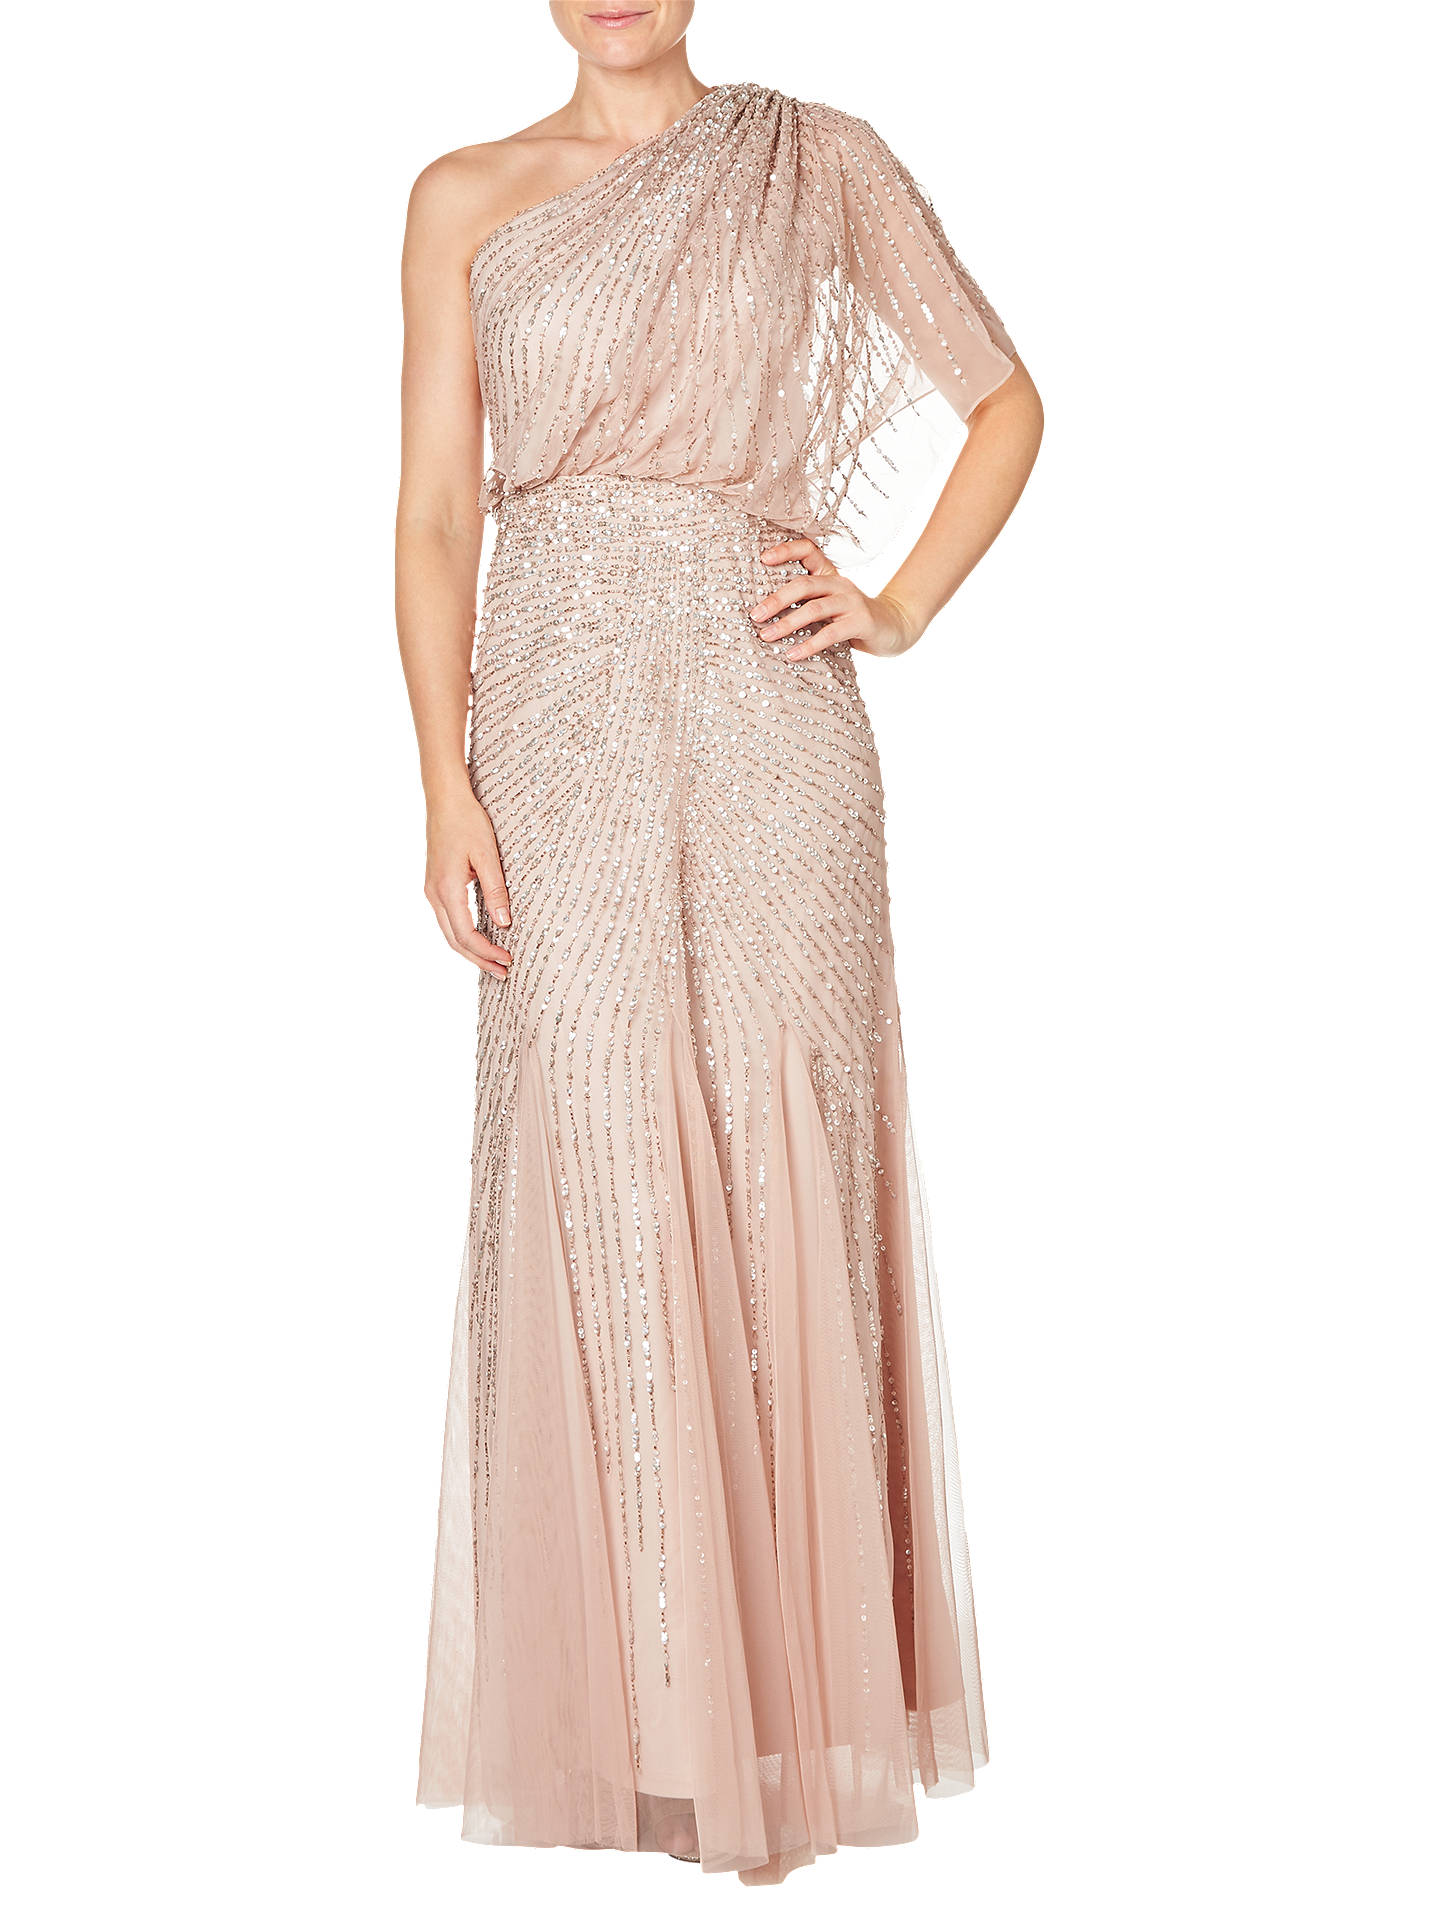 Adrianna Papell One Shoulder Beaded Blouson Gown, Blush at John ...